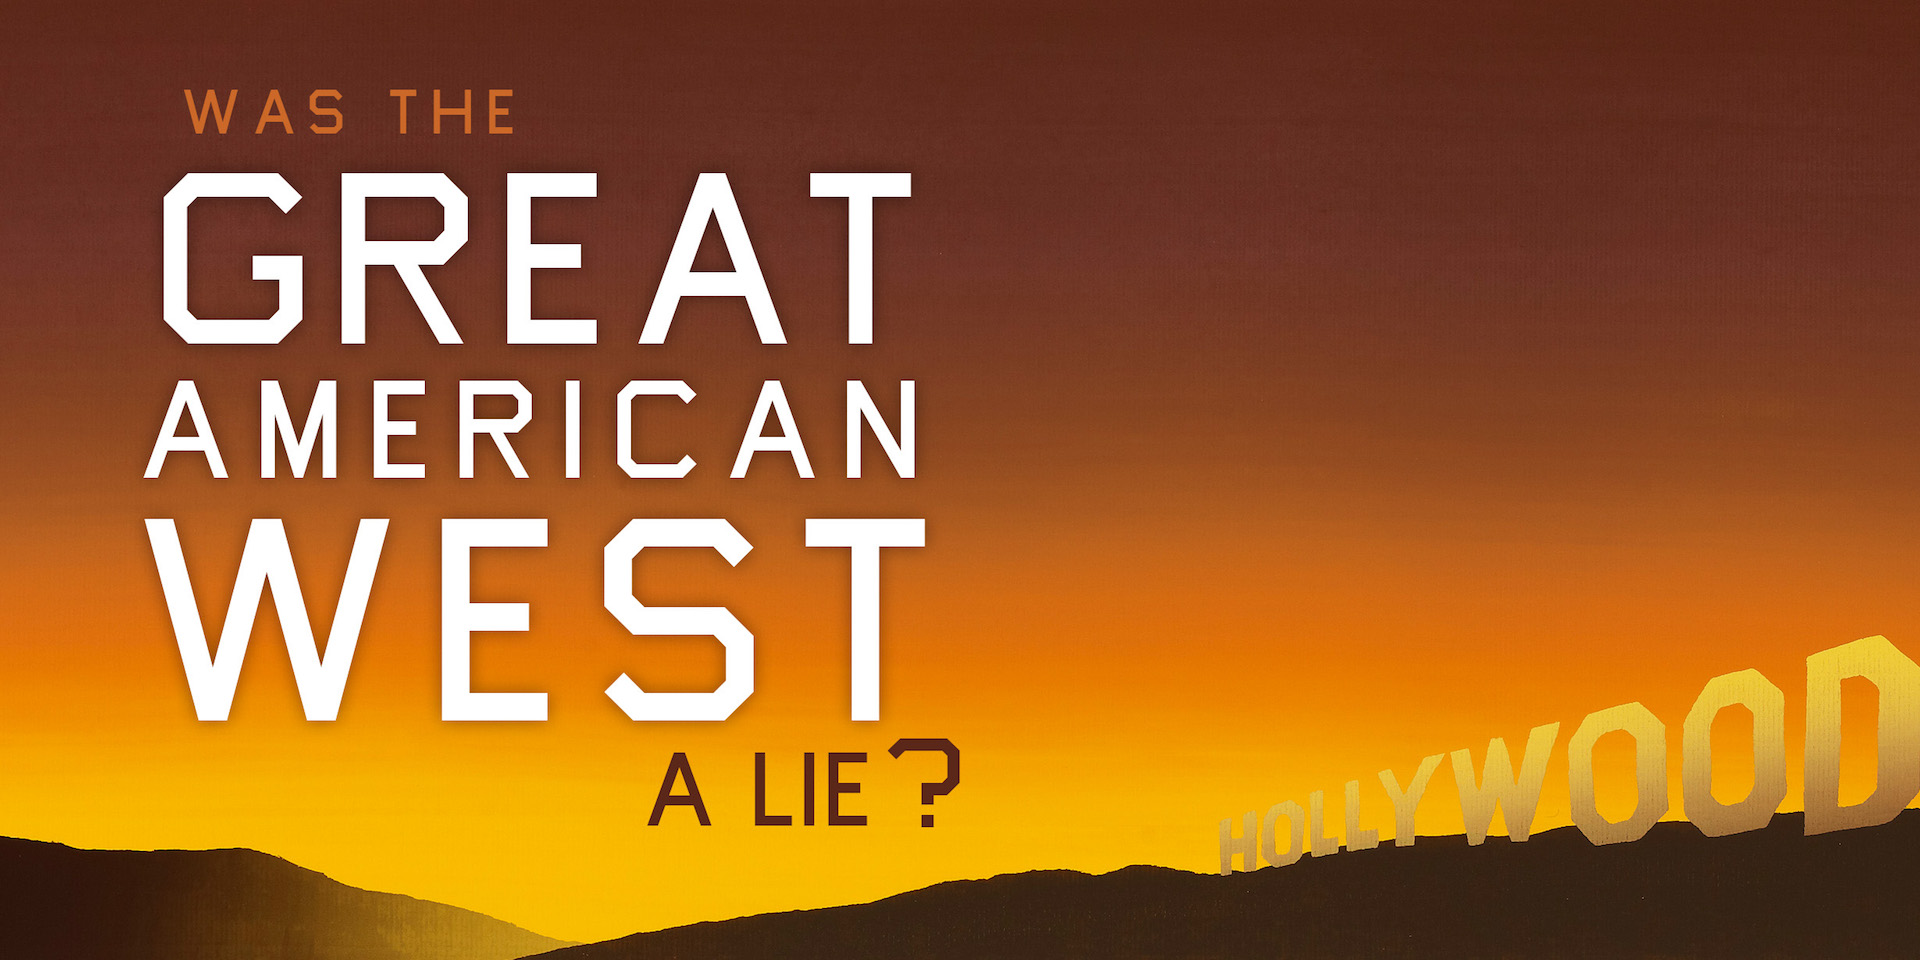 Was the Great American West a Lie?